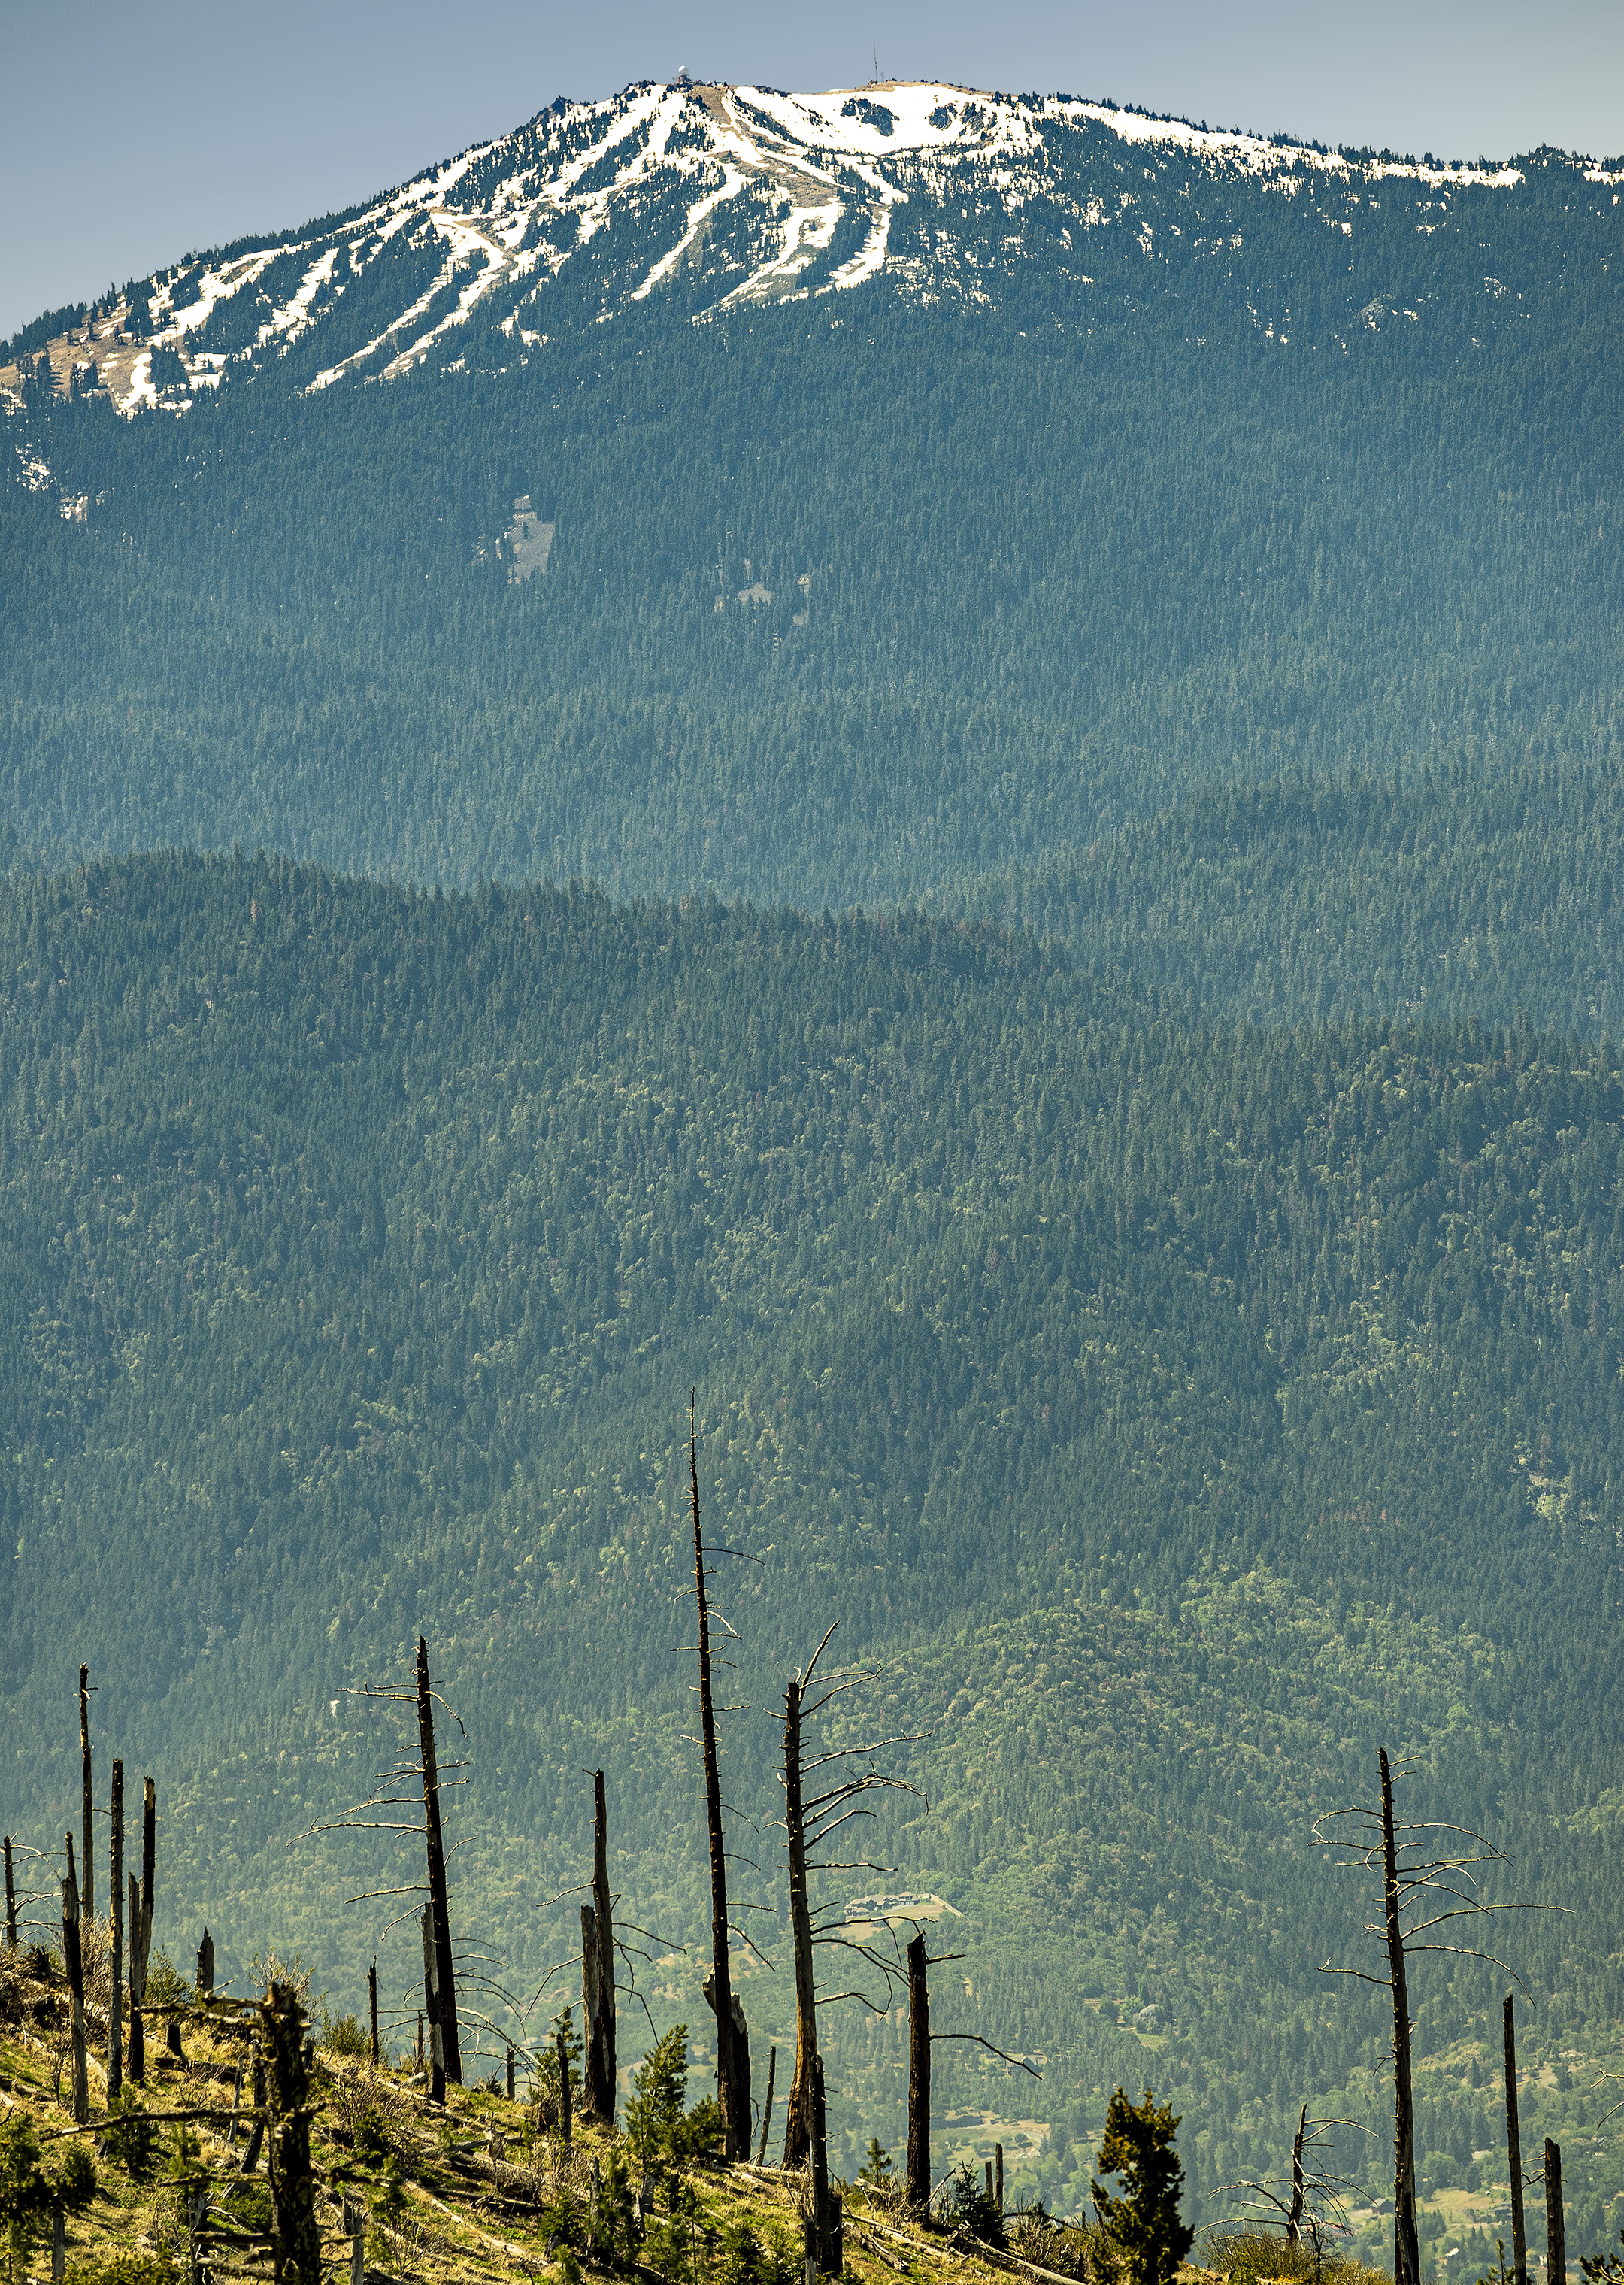 mt ashland from grizzly peak